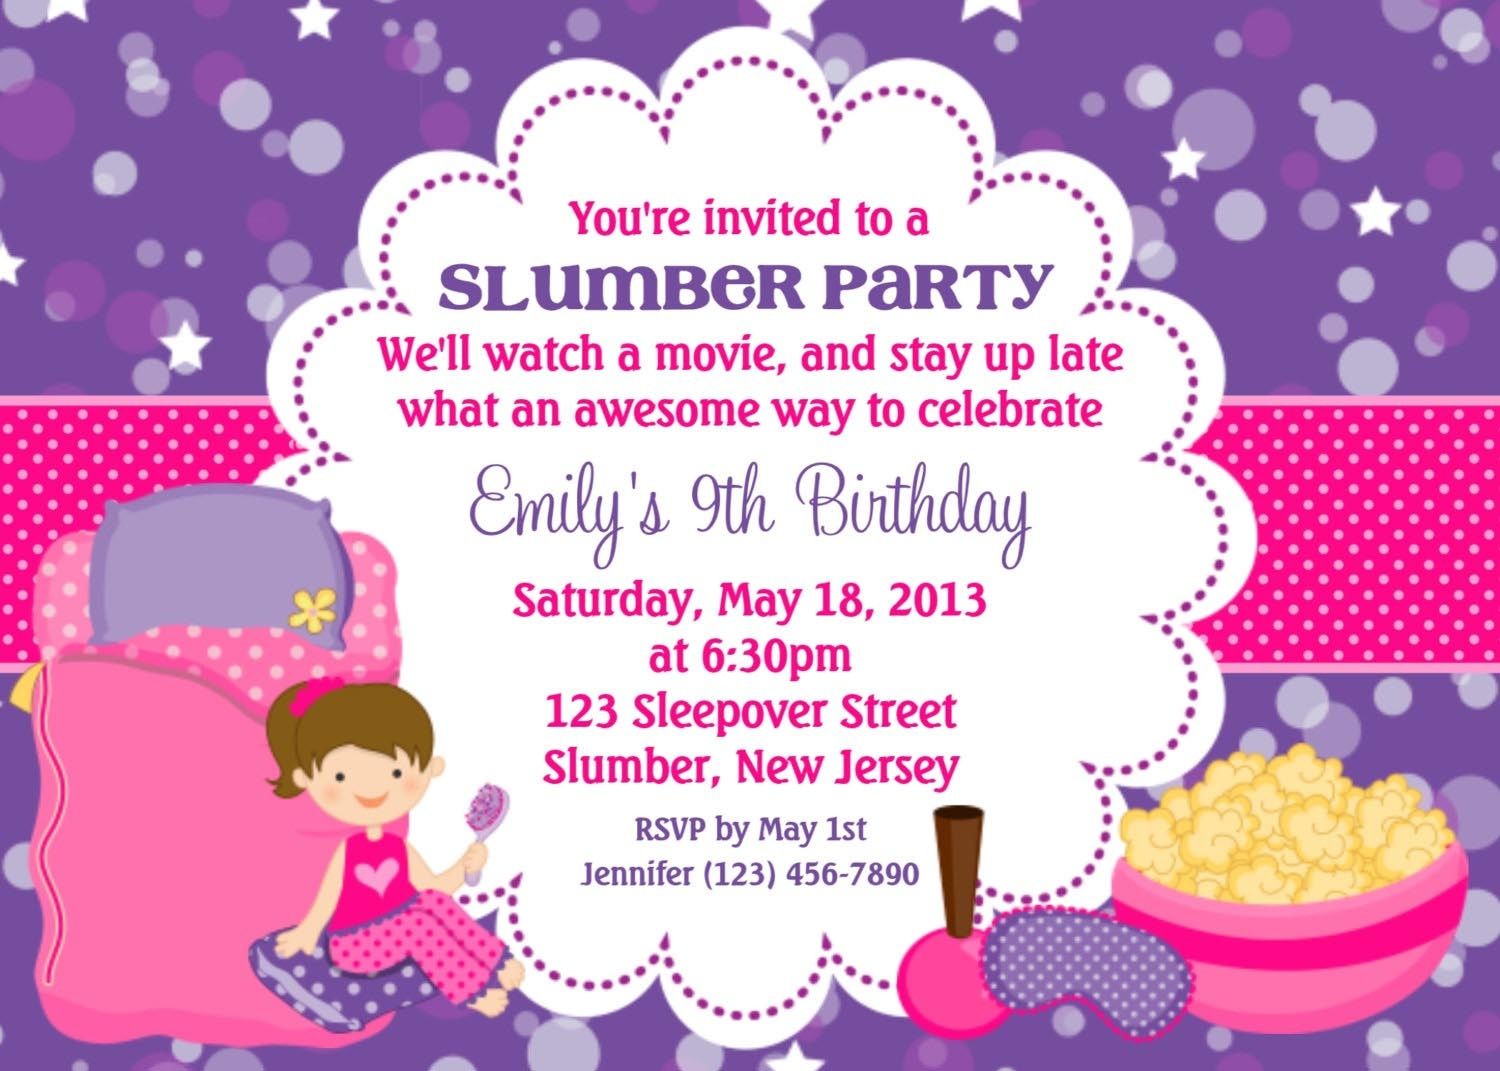 Spa Party Invitations Templates Free | Home Party Ideas - Free Printable Spa Party Invitations Templates